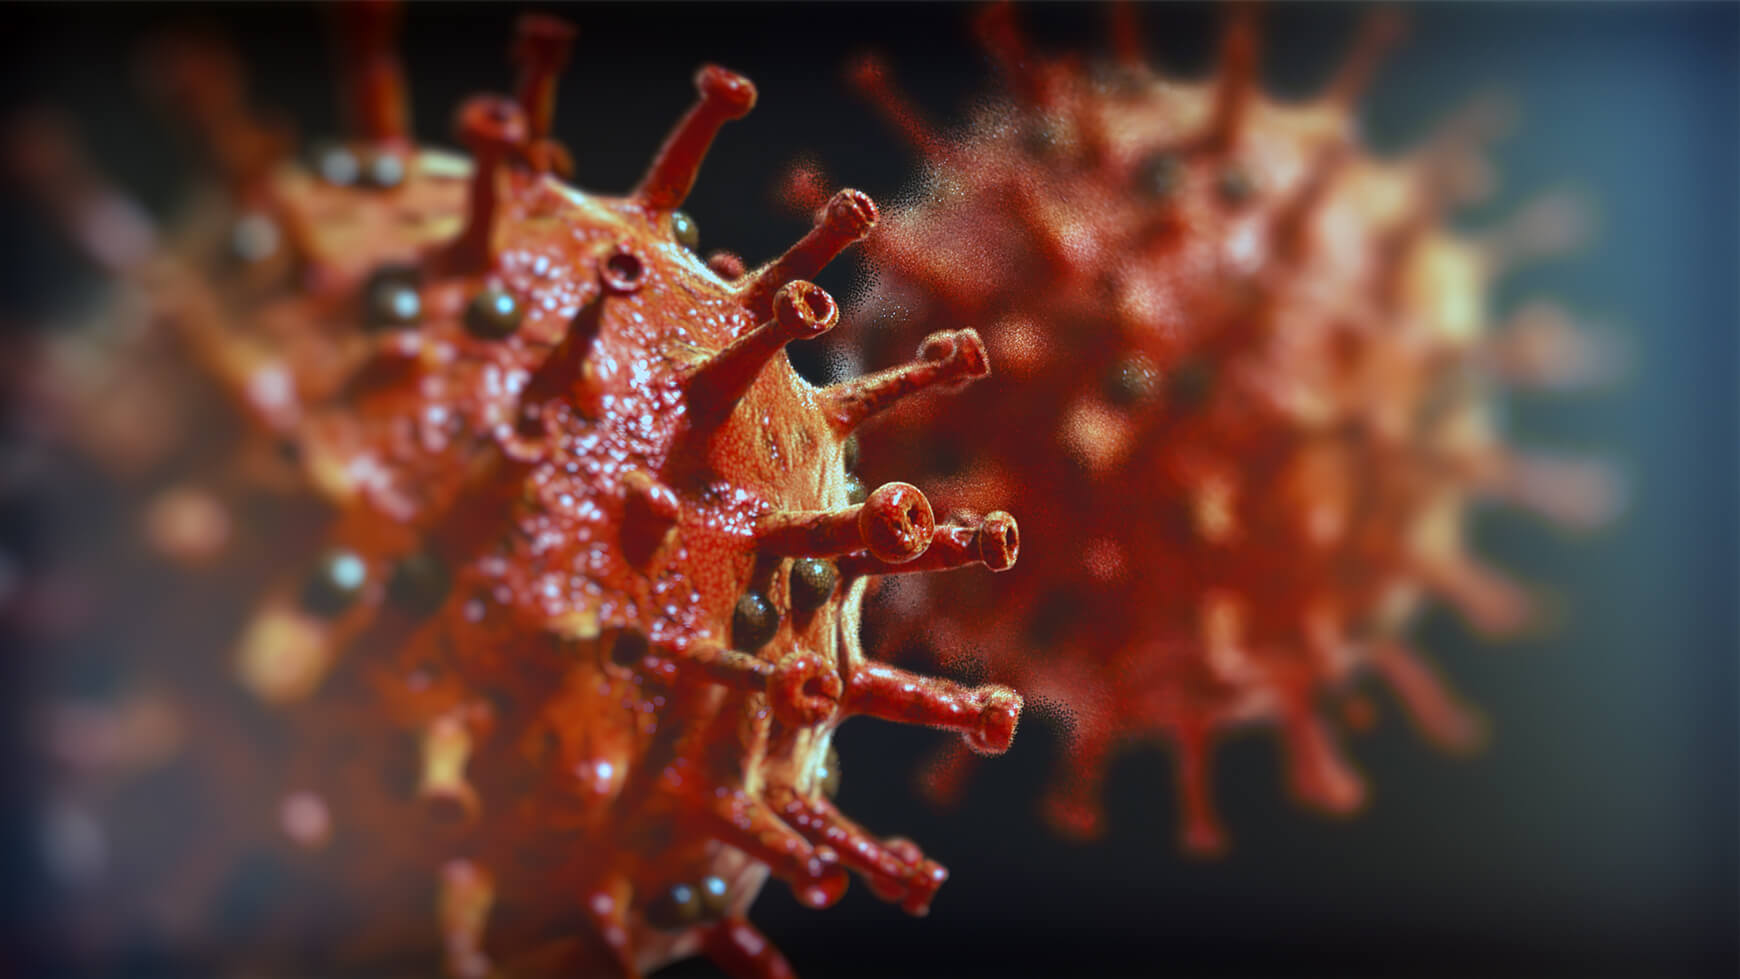 Stilisiertes Corona-Virus in 4D-Optik